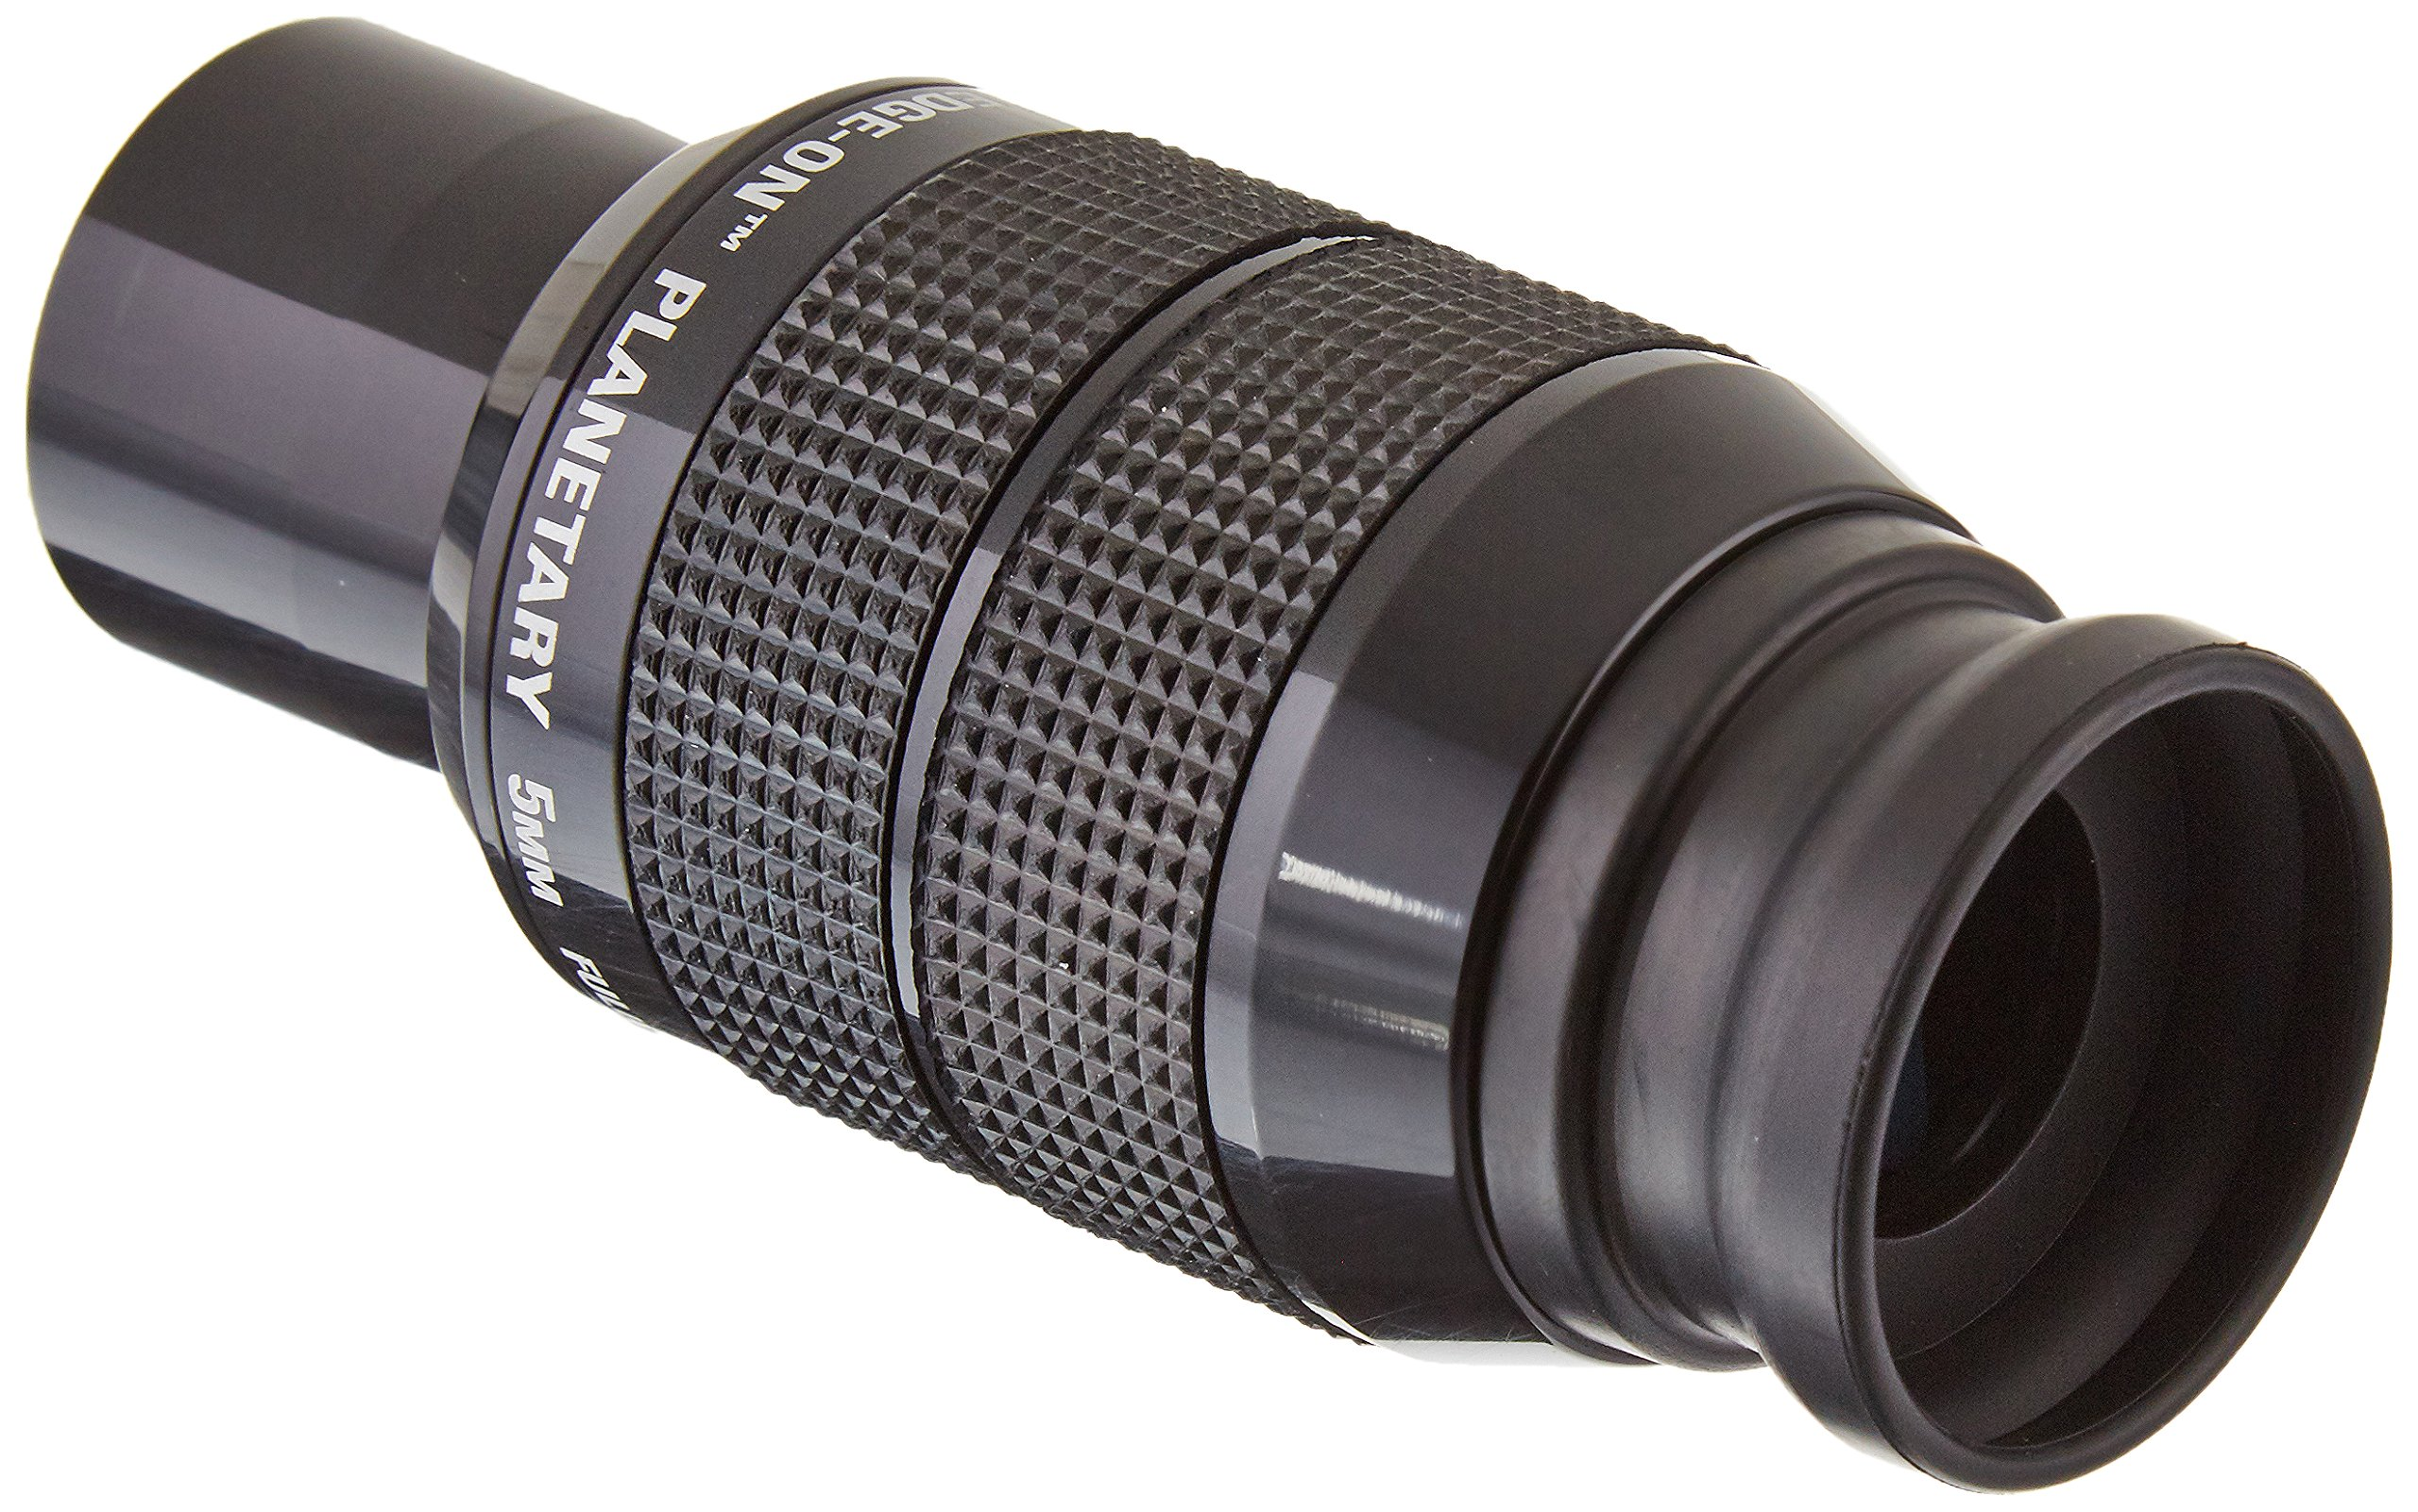 Orion 8885 5mm Edge On Planetary Eyepiece by Orion